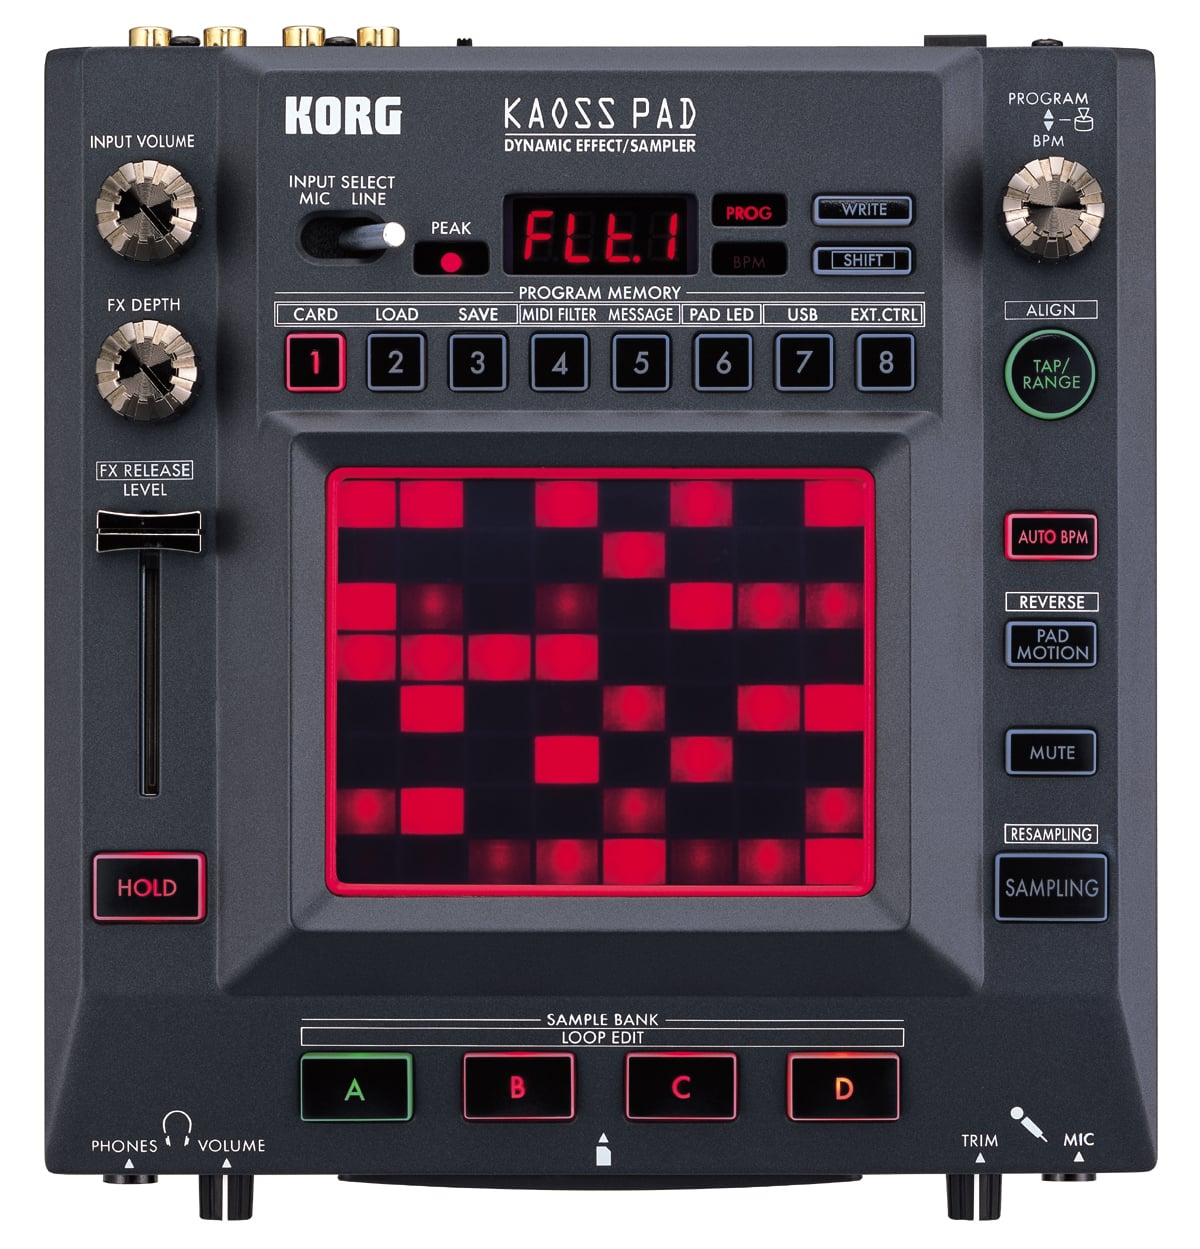 korg kaosspad 3 plus dj effects unit dj city. Black Bedroom Furniture Sets. Home Design Ideas